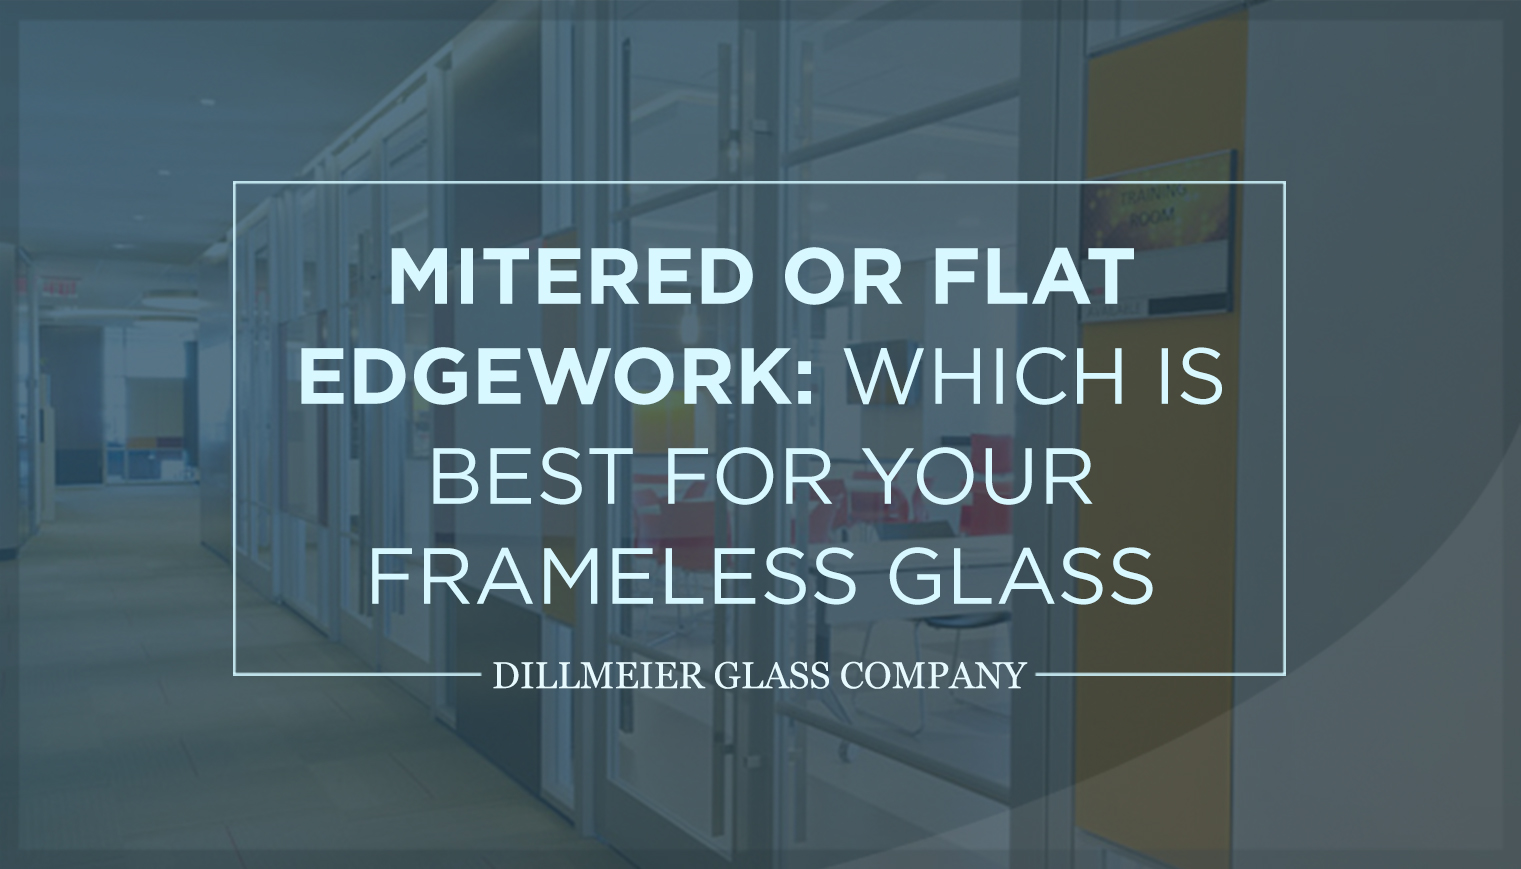 Mitered-or-Flat-Edgework--Which-Is-Best-for-Your-Frameless-Glass-Case----Text-Graphic